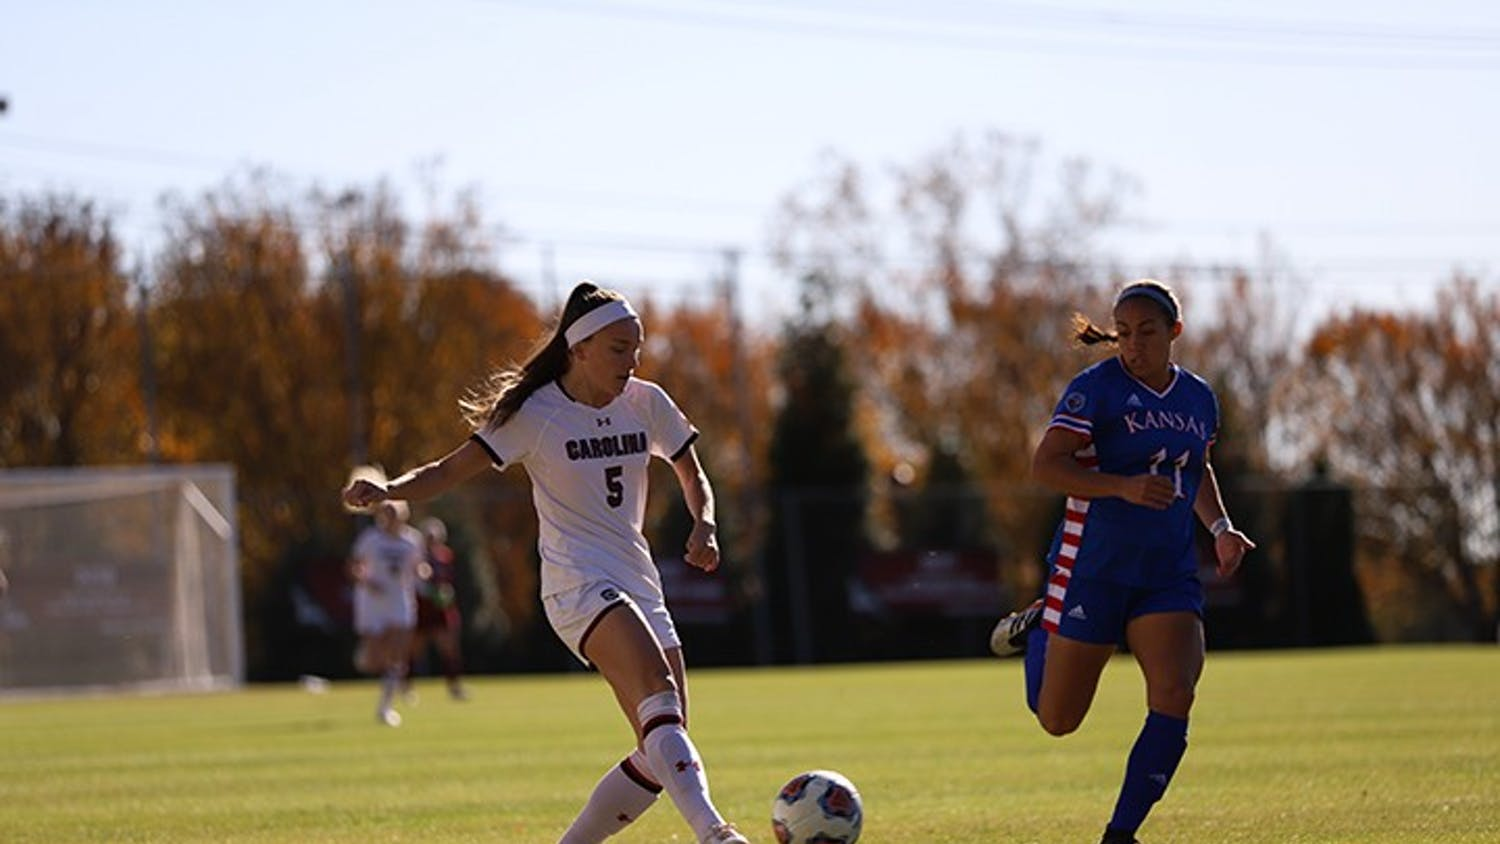 Senior forward Luciana Zullo dribbles the ball as a Kansas player runs beside her. Zullo tied in 9th place for NCAA Tournament points in a career with four.